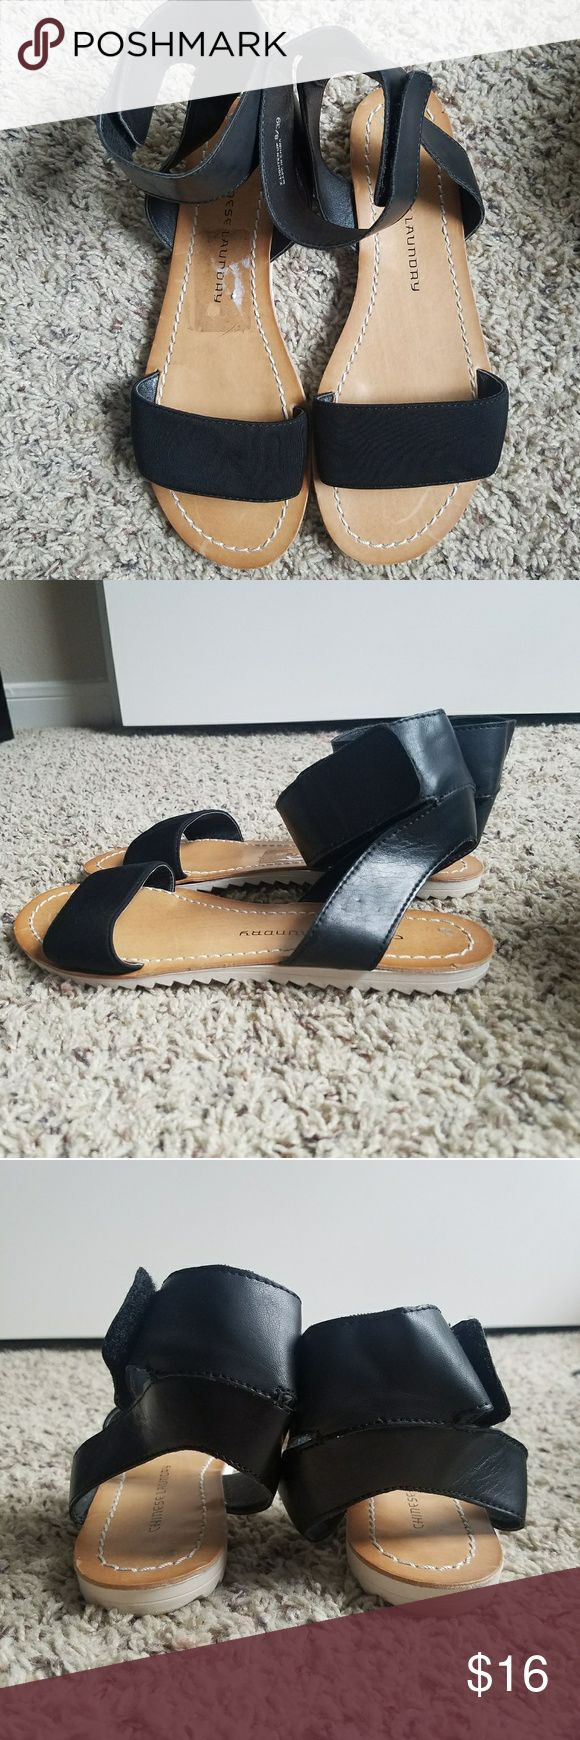 Chinese laundry sandals in really good condition Chinese laundry sandals in really good condition  size 8/39 Chinese Laundry Shoes Sandals